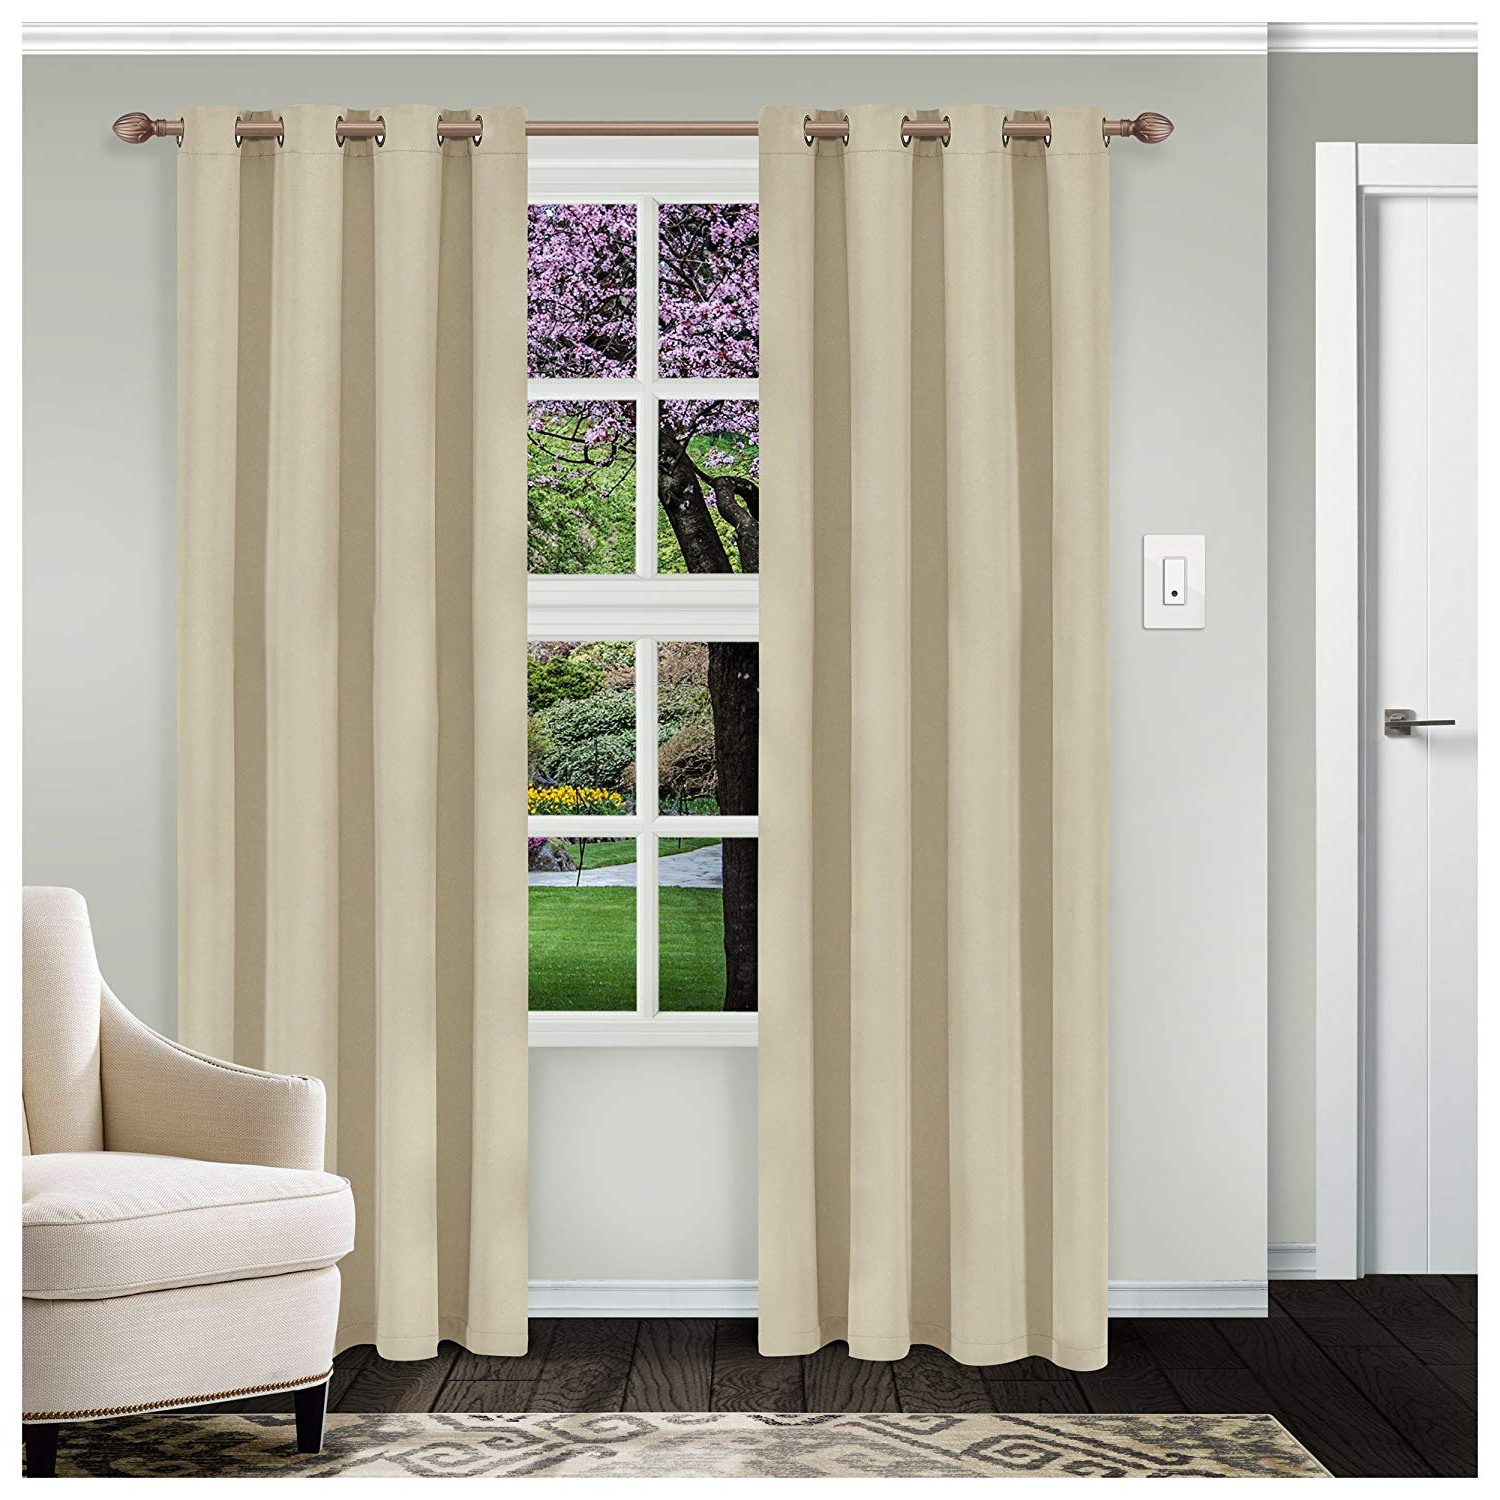 Widely Used Solid Insulated Thermal Blackout Curtain Panel Pairs Intended For Superior Classic Solid Blackout 2 Panel Curtains (52 X84), Ivory (View 20 of 20)